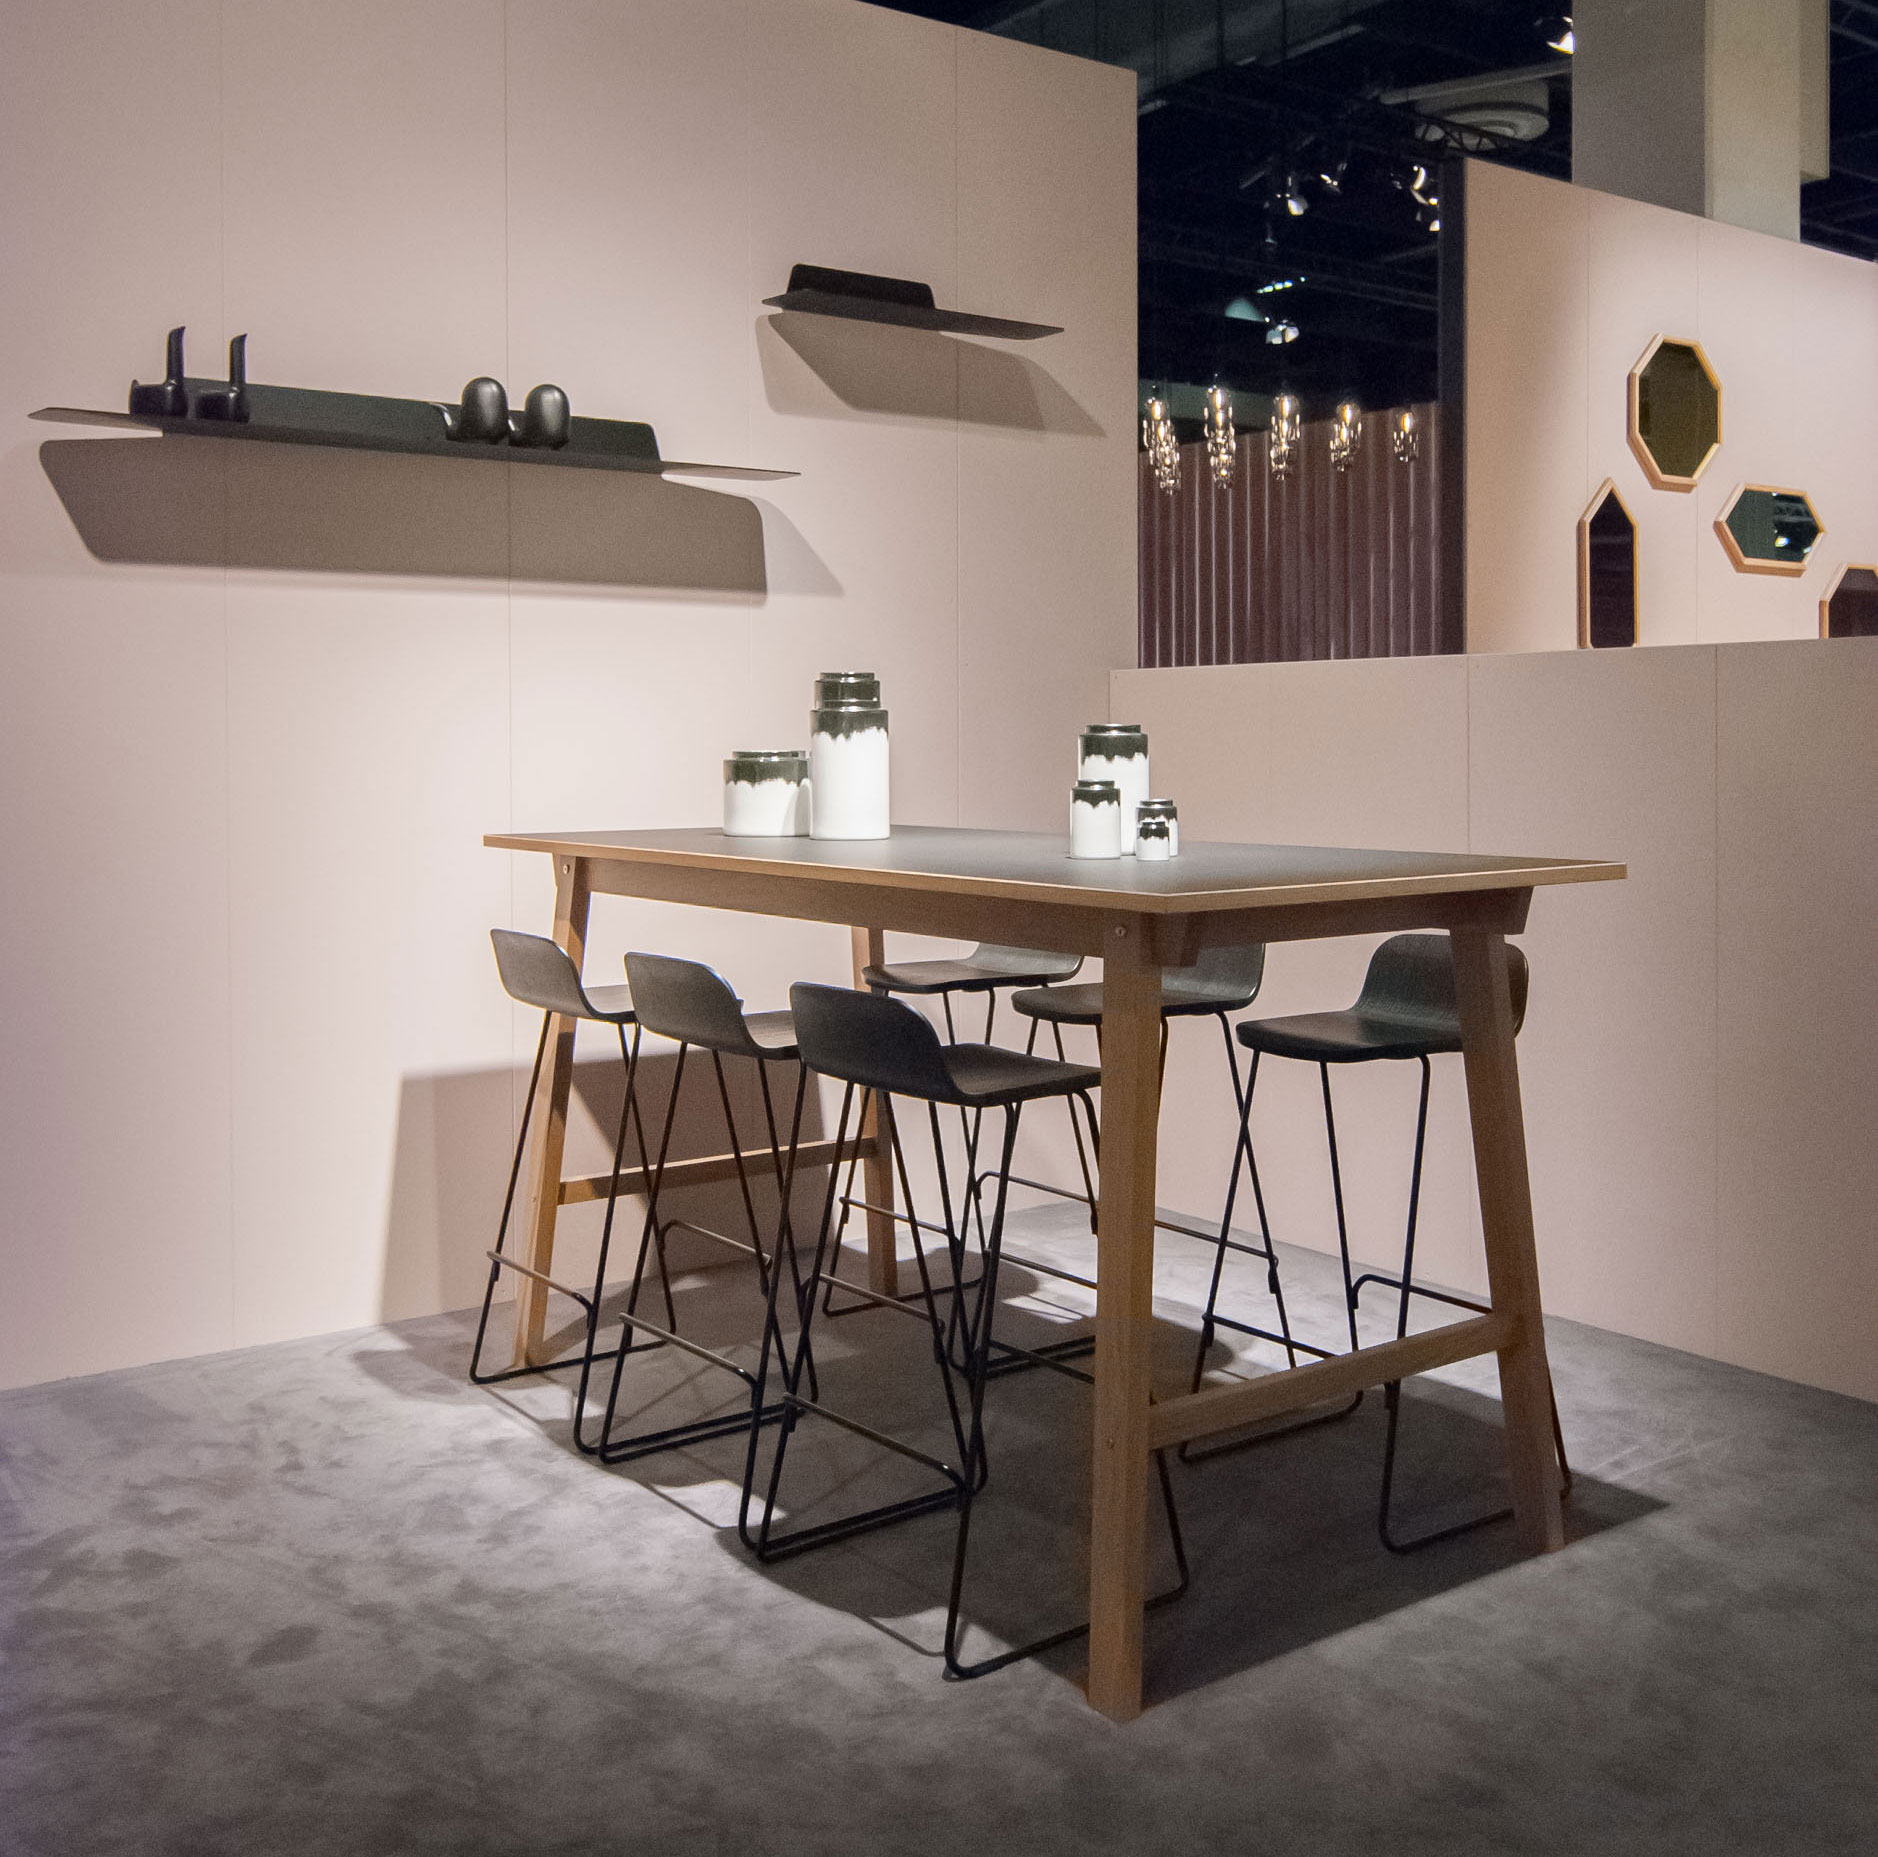 the bar caf restaurant friendly bar tables is available in either linoleum or veneer finish vol 2 size 90 x 200 cm h 103 cm